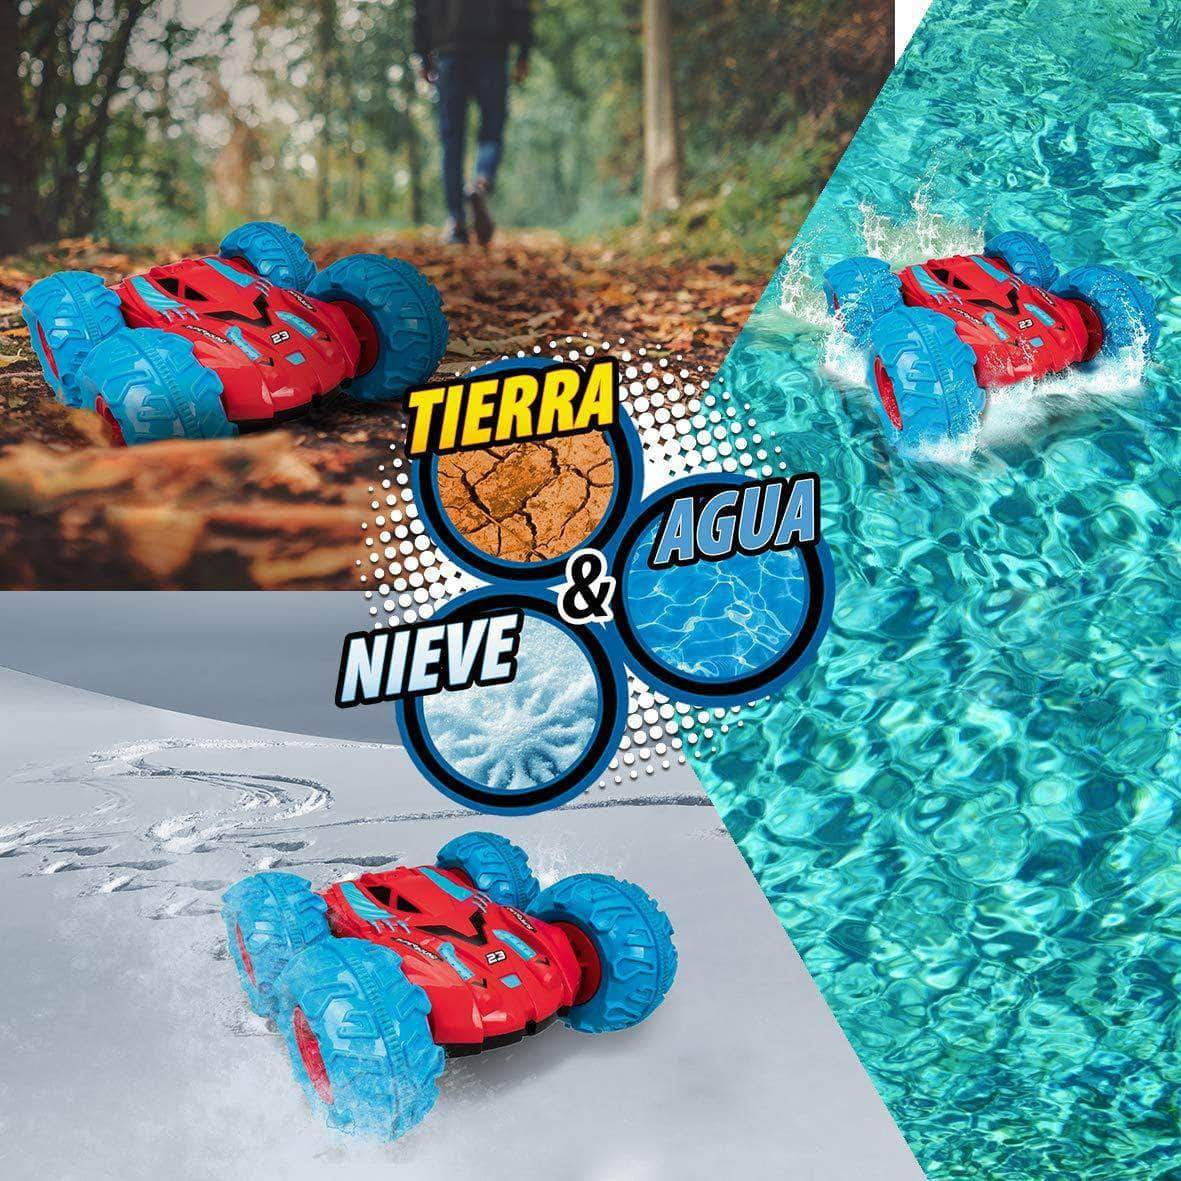 Amazon Xtrem Raiders Superbound - Anfibio teledirigido para Niños, Azul/Rojo